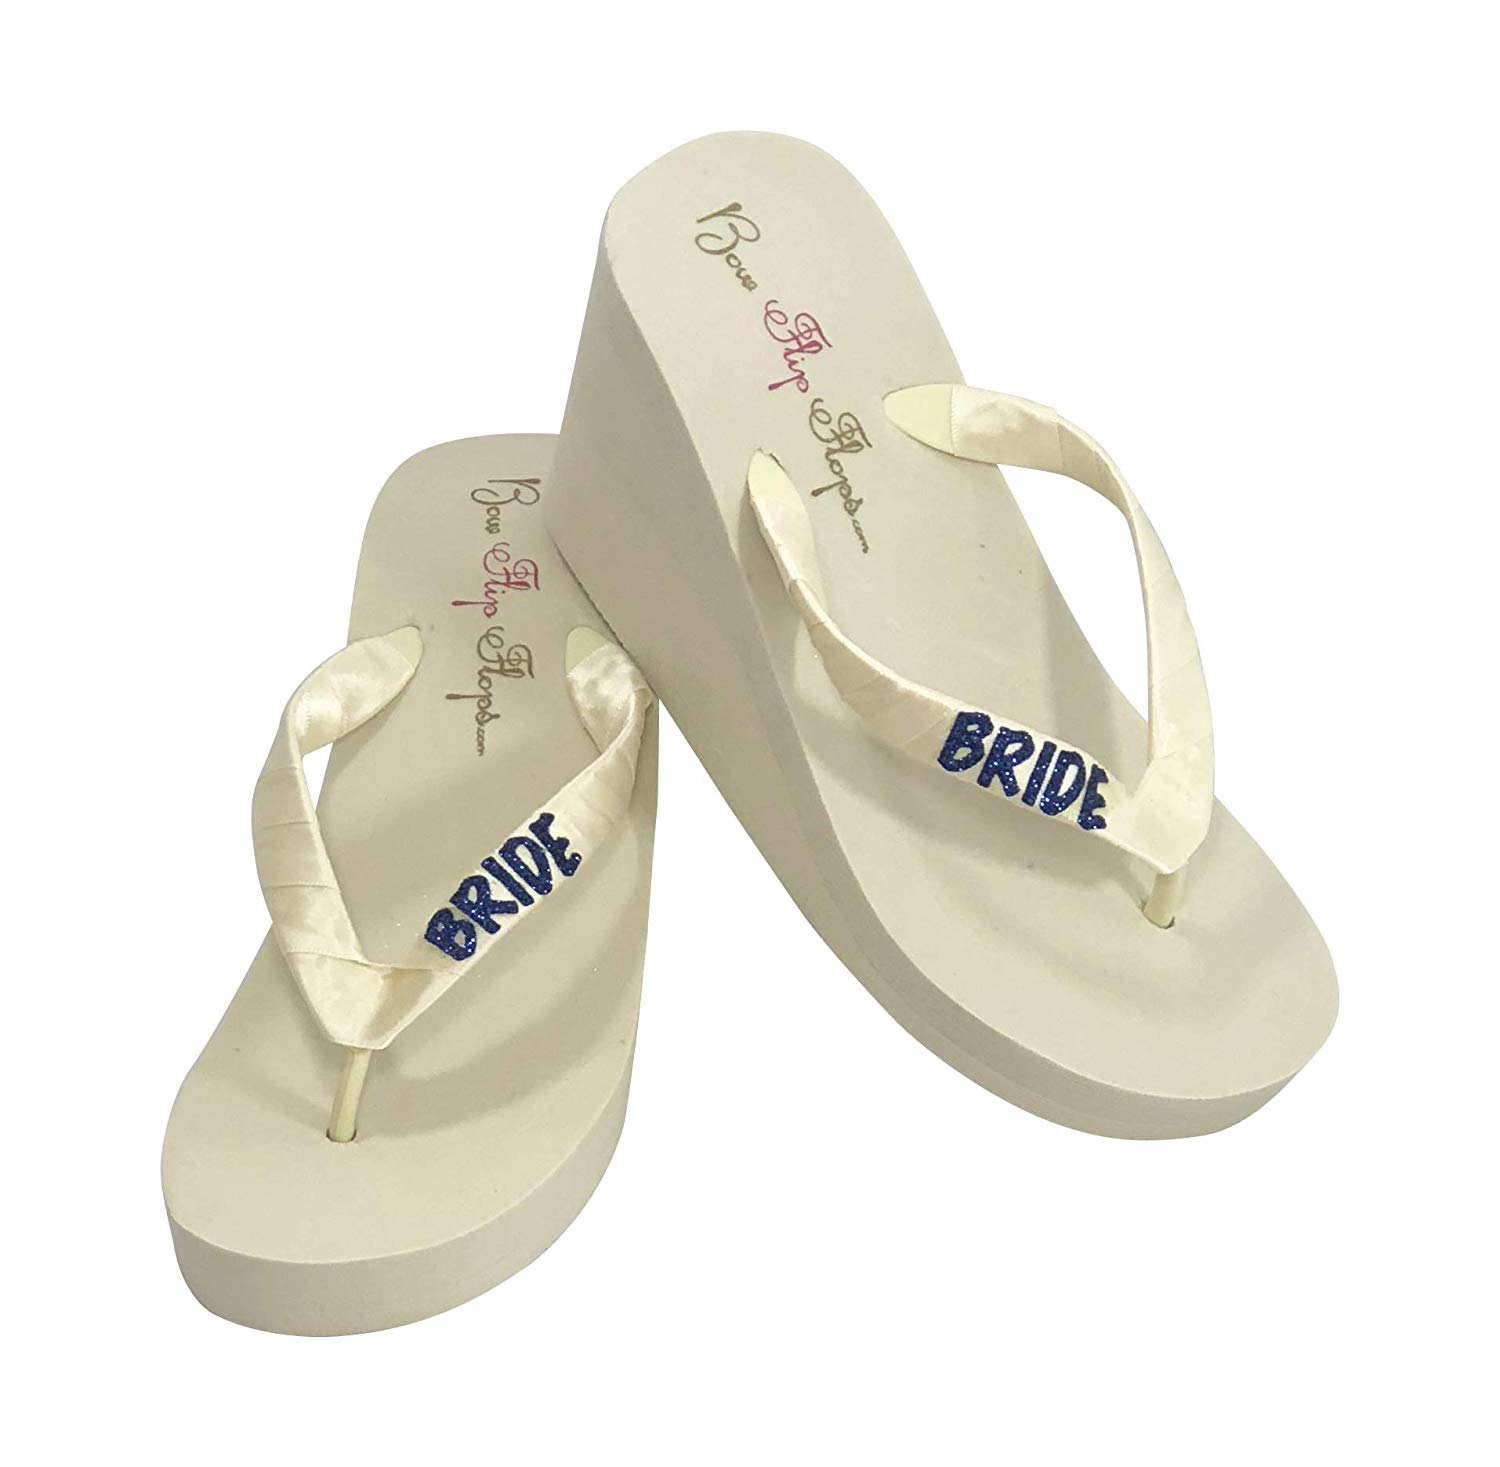 5a13bd1295f Navy Glitter Cute Wedding Wedge Flip Flops with Bride on the straps